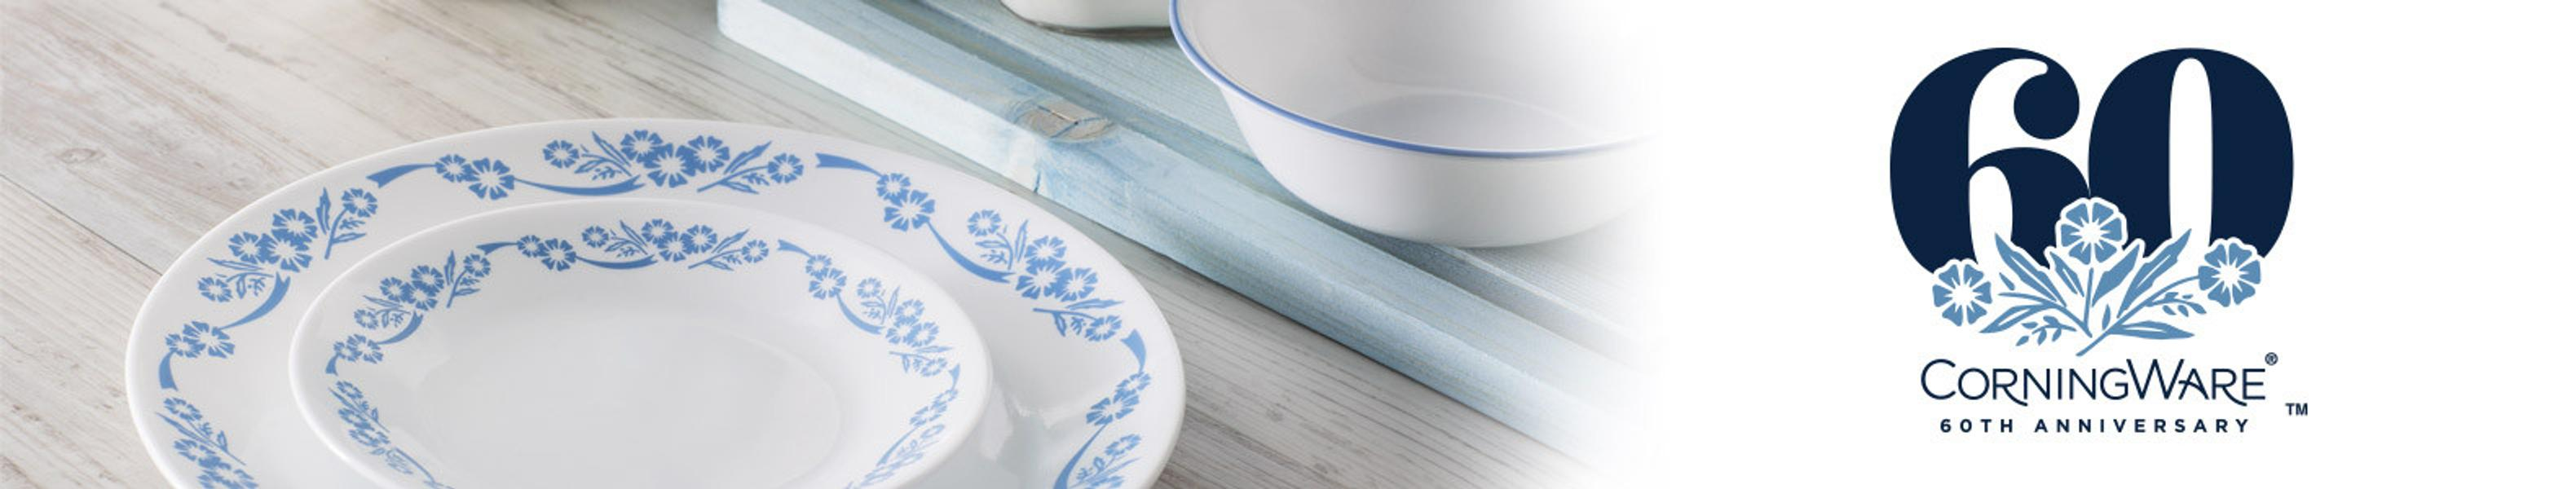 corningware-60th-category-banner-v2